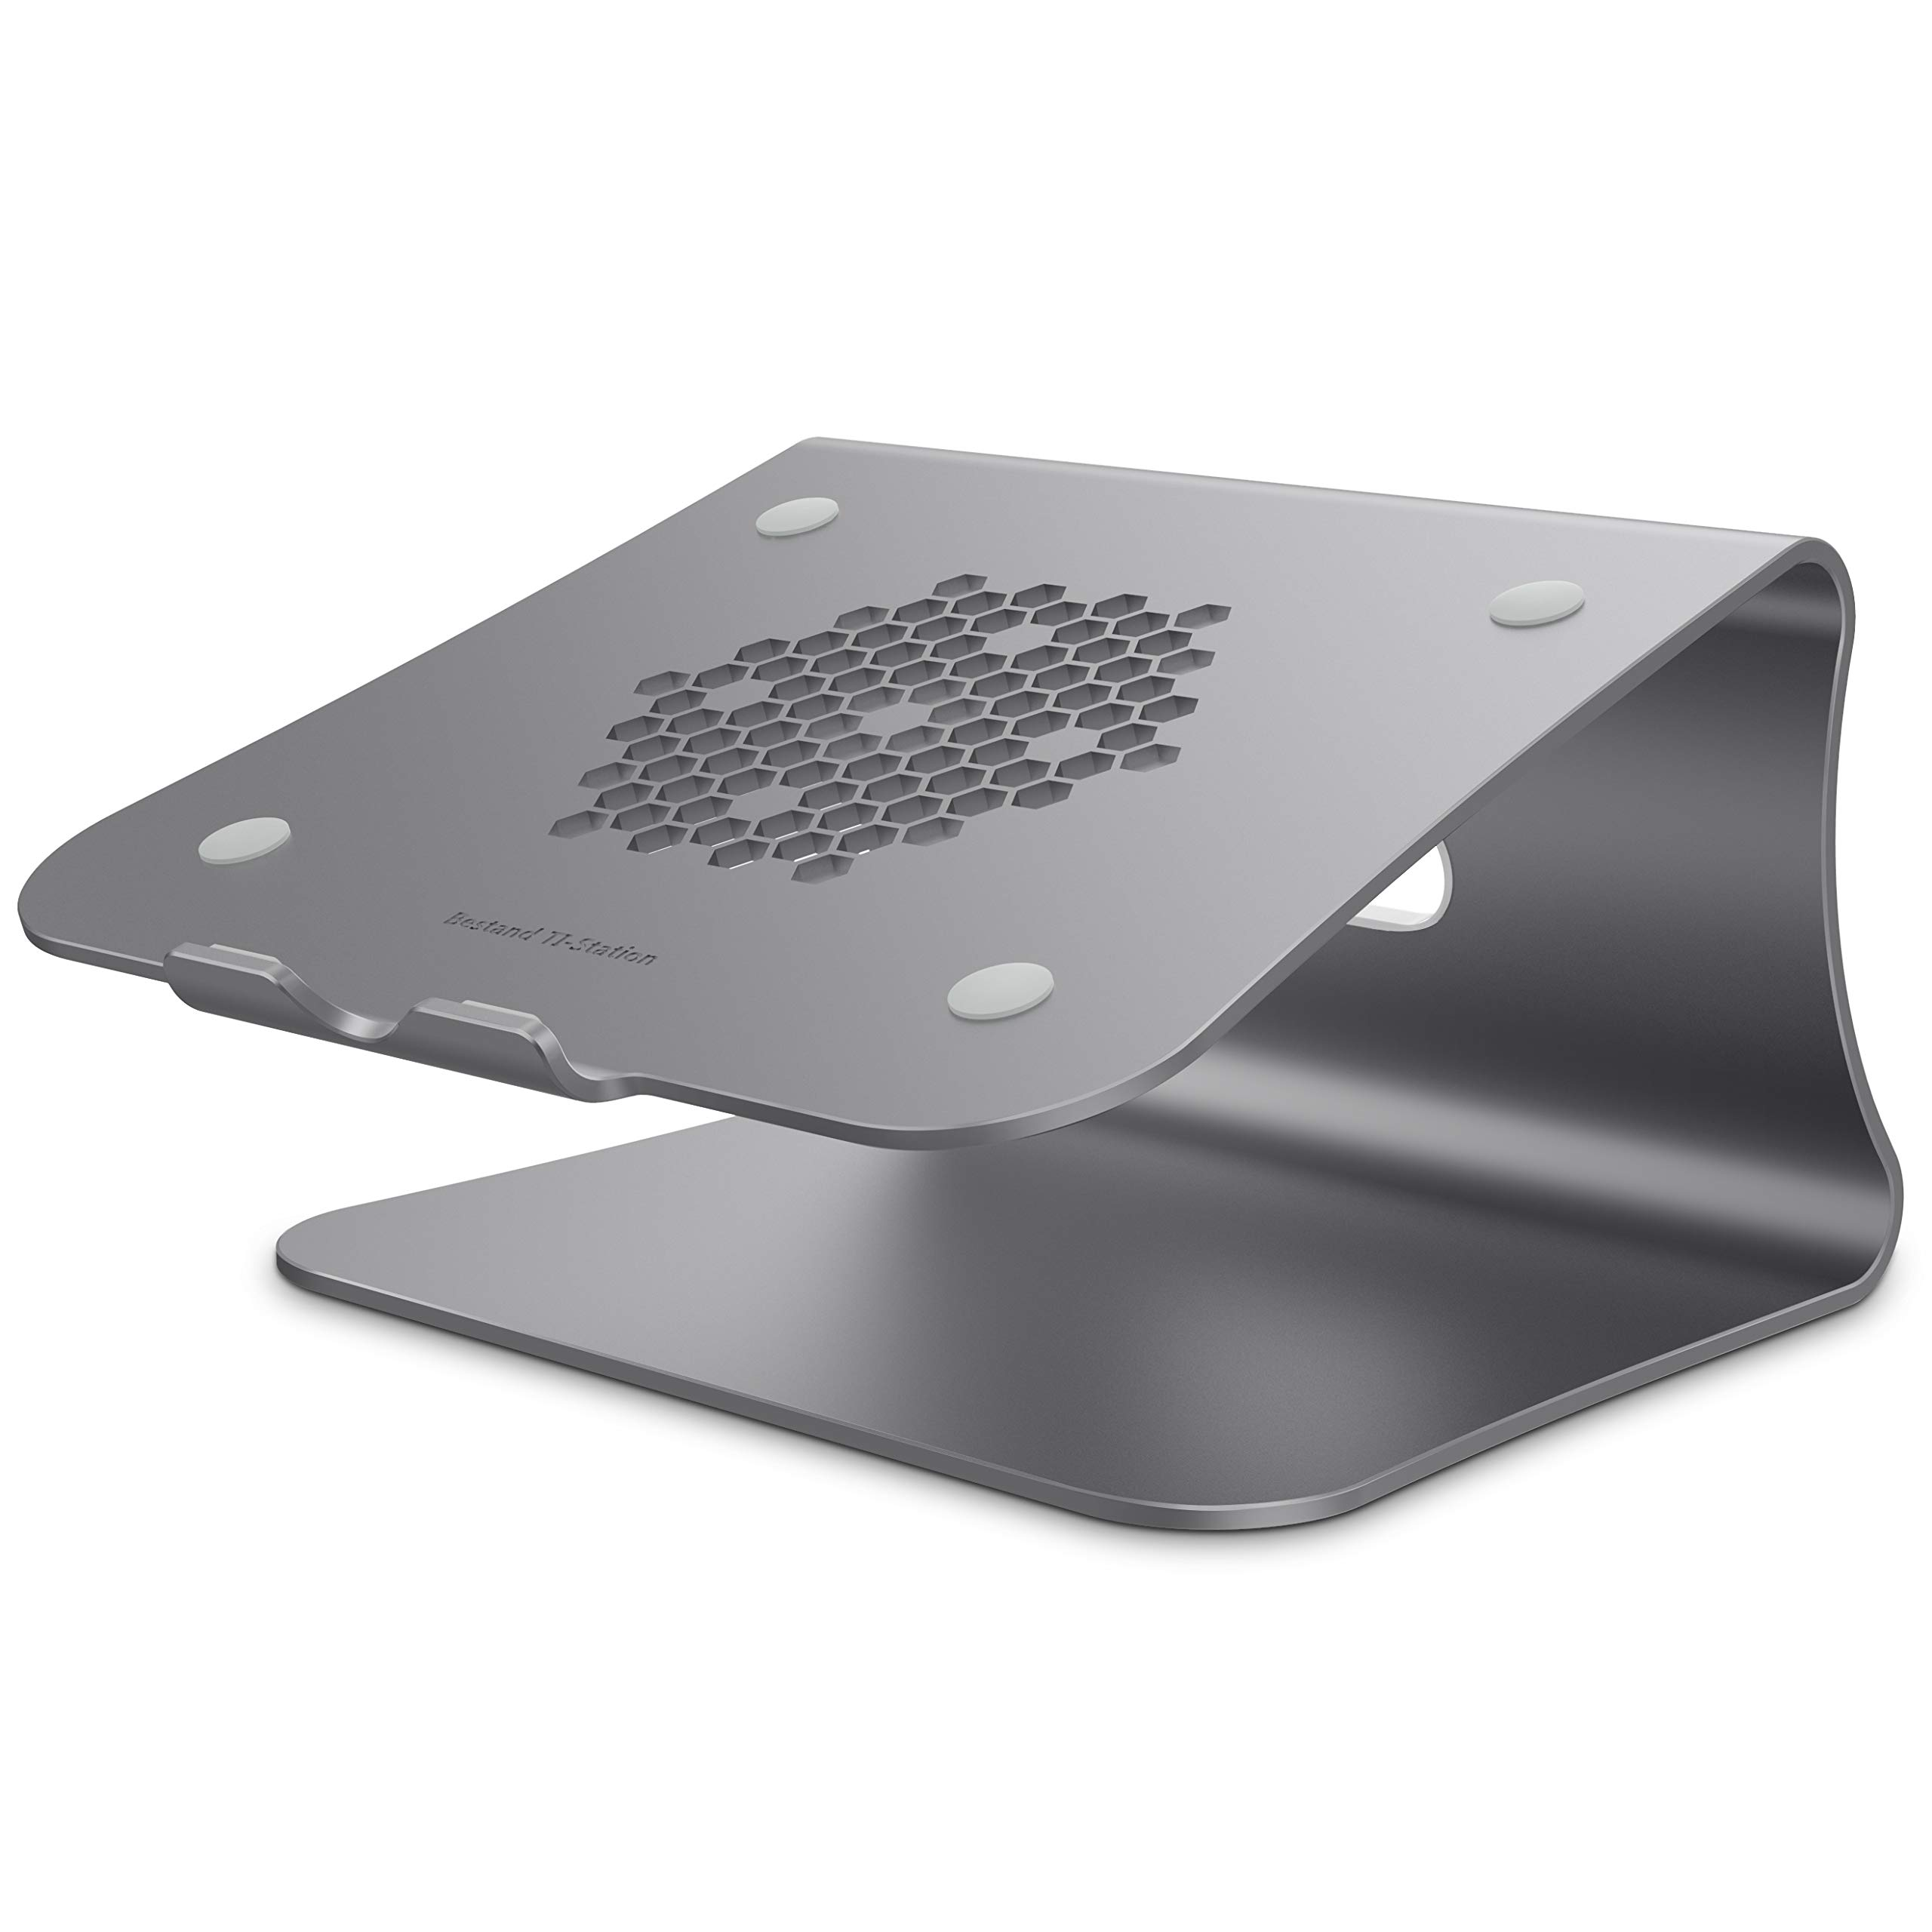 Bestand Ergonomic Aluminum Ventilated Desktop Stand for MacBook [Honeycomb Version] Mount, Holder for Apple MacBook Air, MacBook Pro, All Notebooks, Grey(Patented)